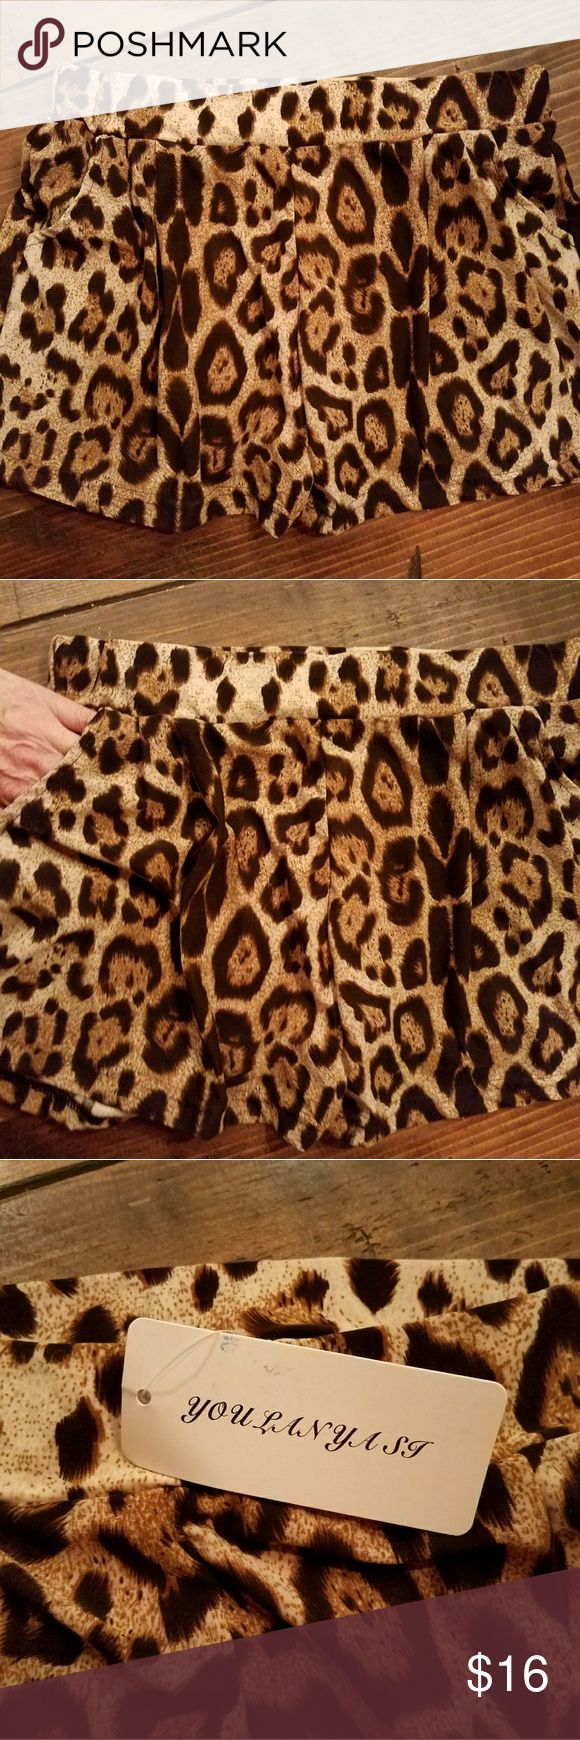 Sexy silky leopard shorts Sexy silky leopard shorts. Fabric is 65% cotton 35% polyester but they feel very satiny and silky. They are size large but fit like a small or x-small. Two front pockets. Give 'em a try! YOULANYAST Shorts